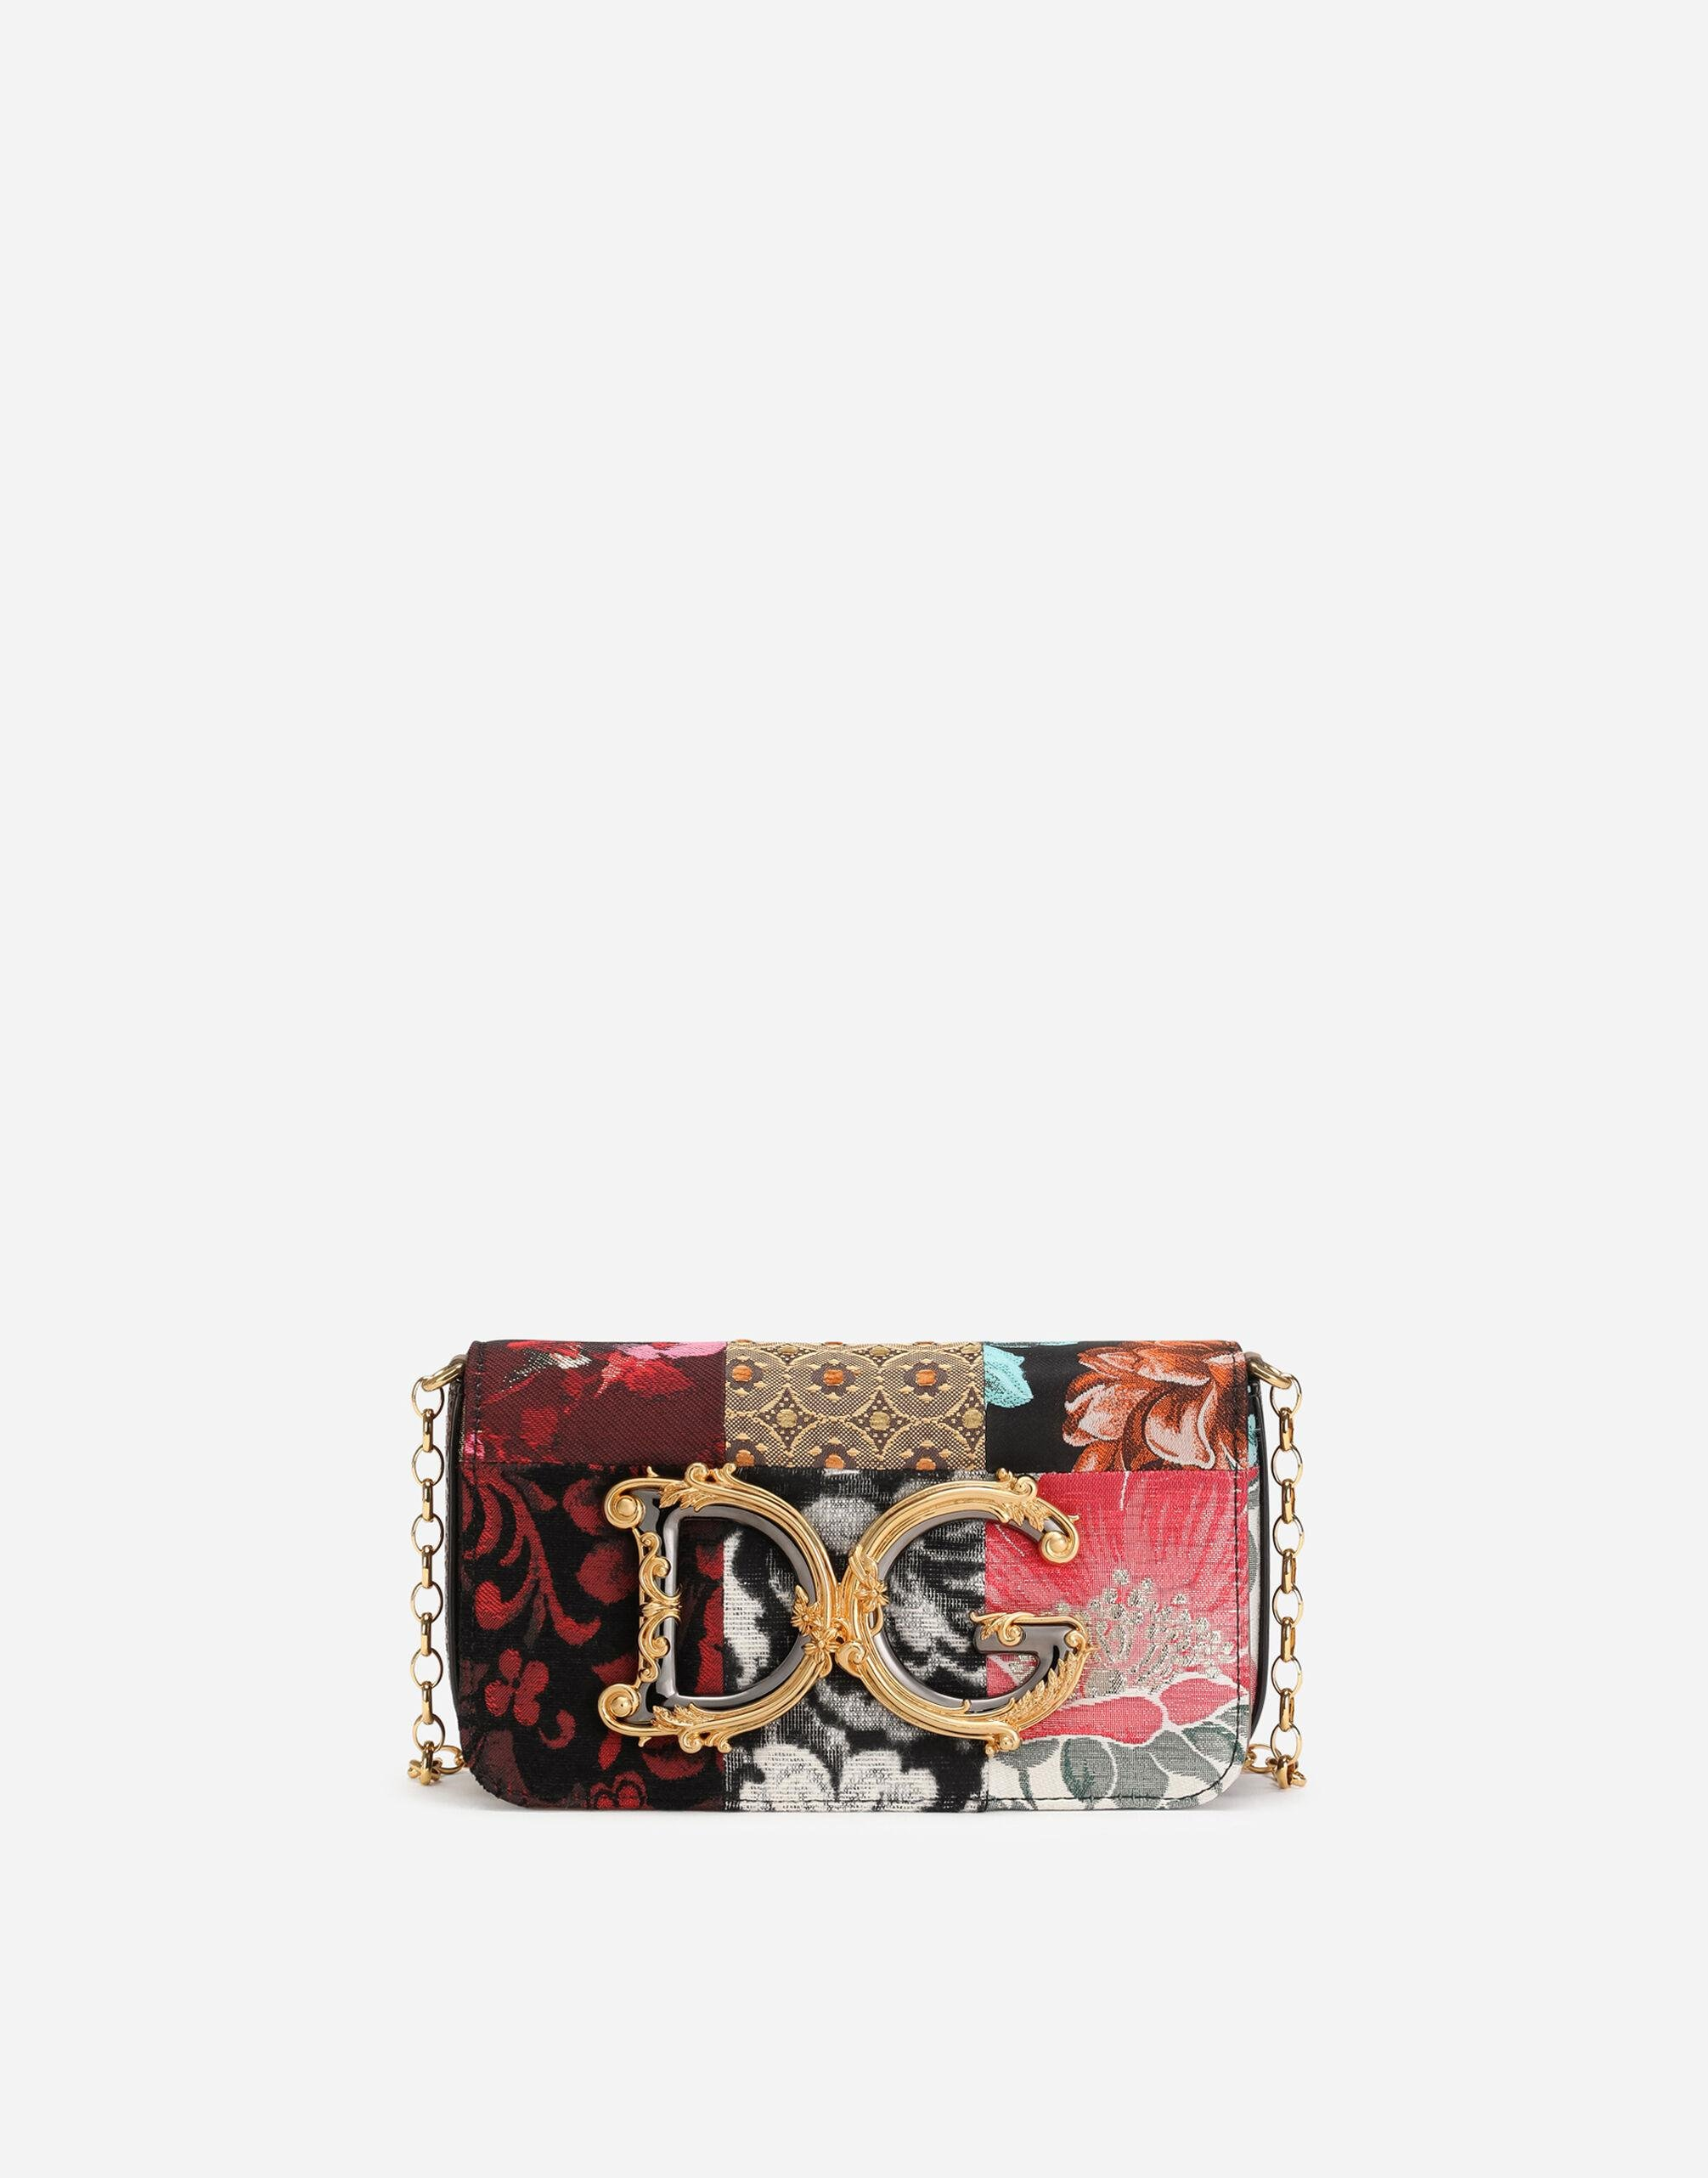 DG Girls clutch in patchwork fabric and ayers